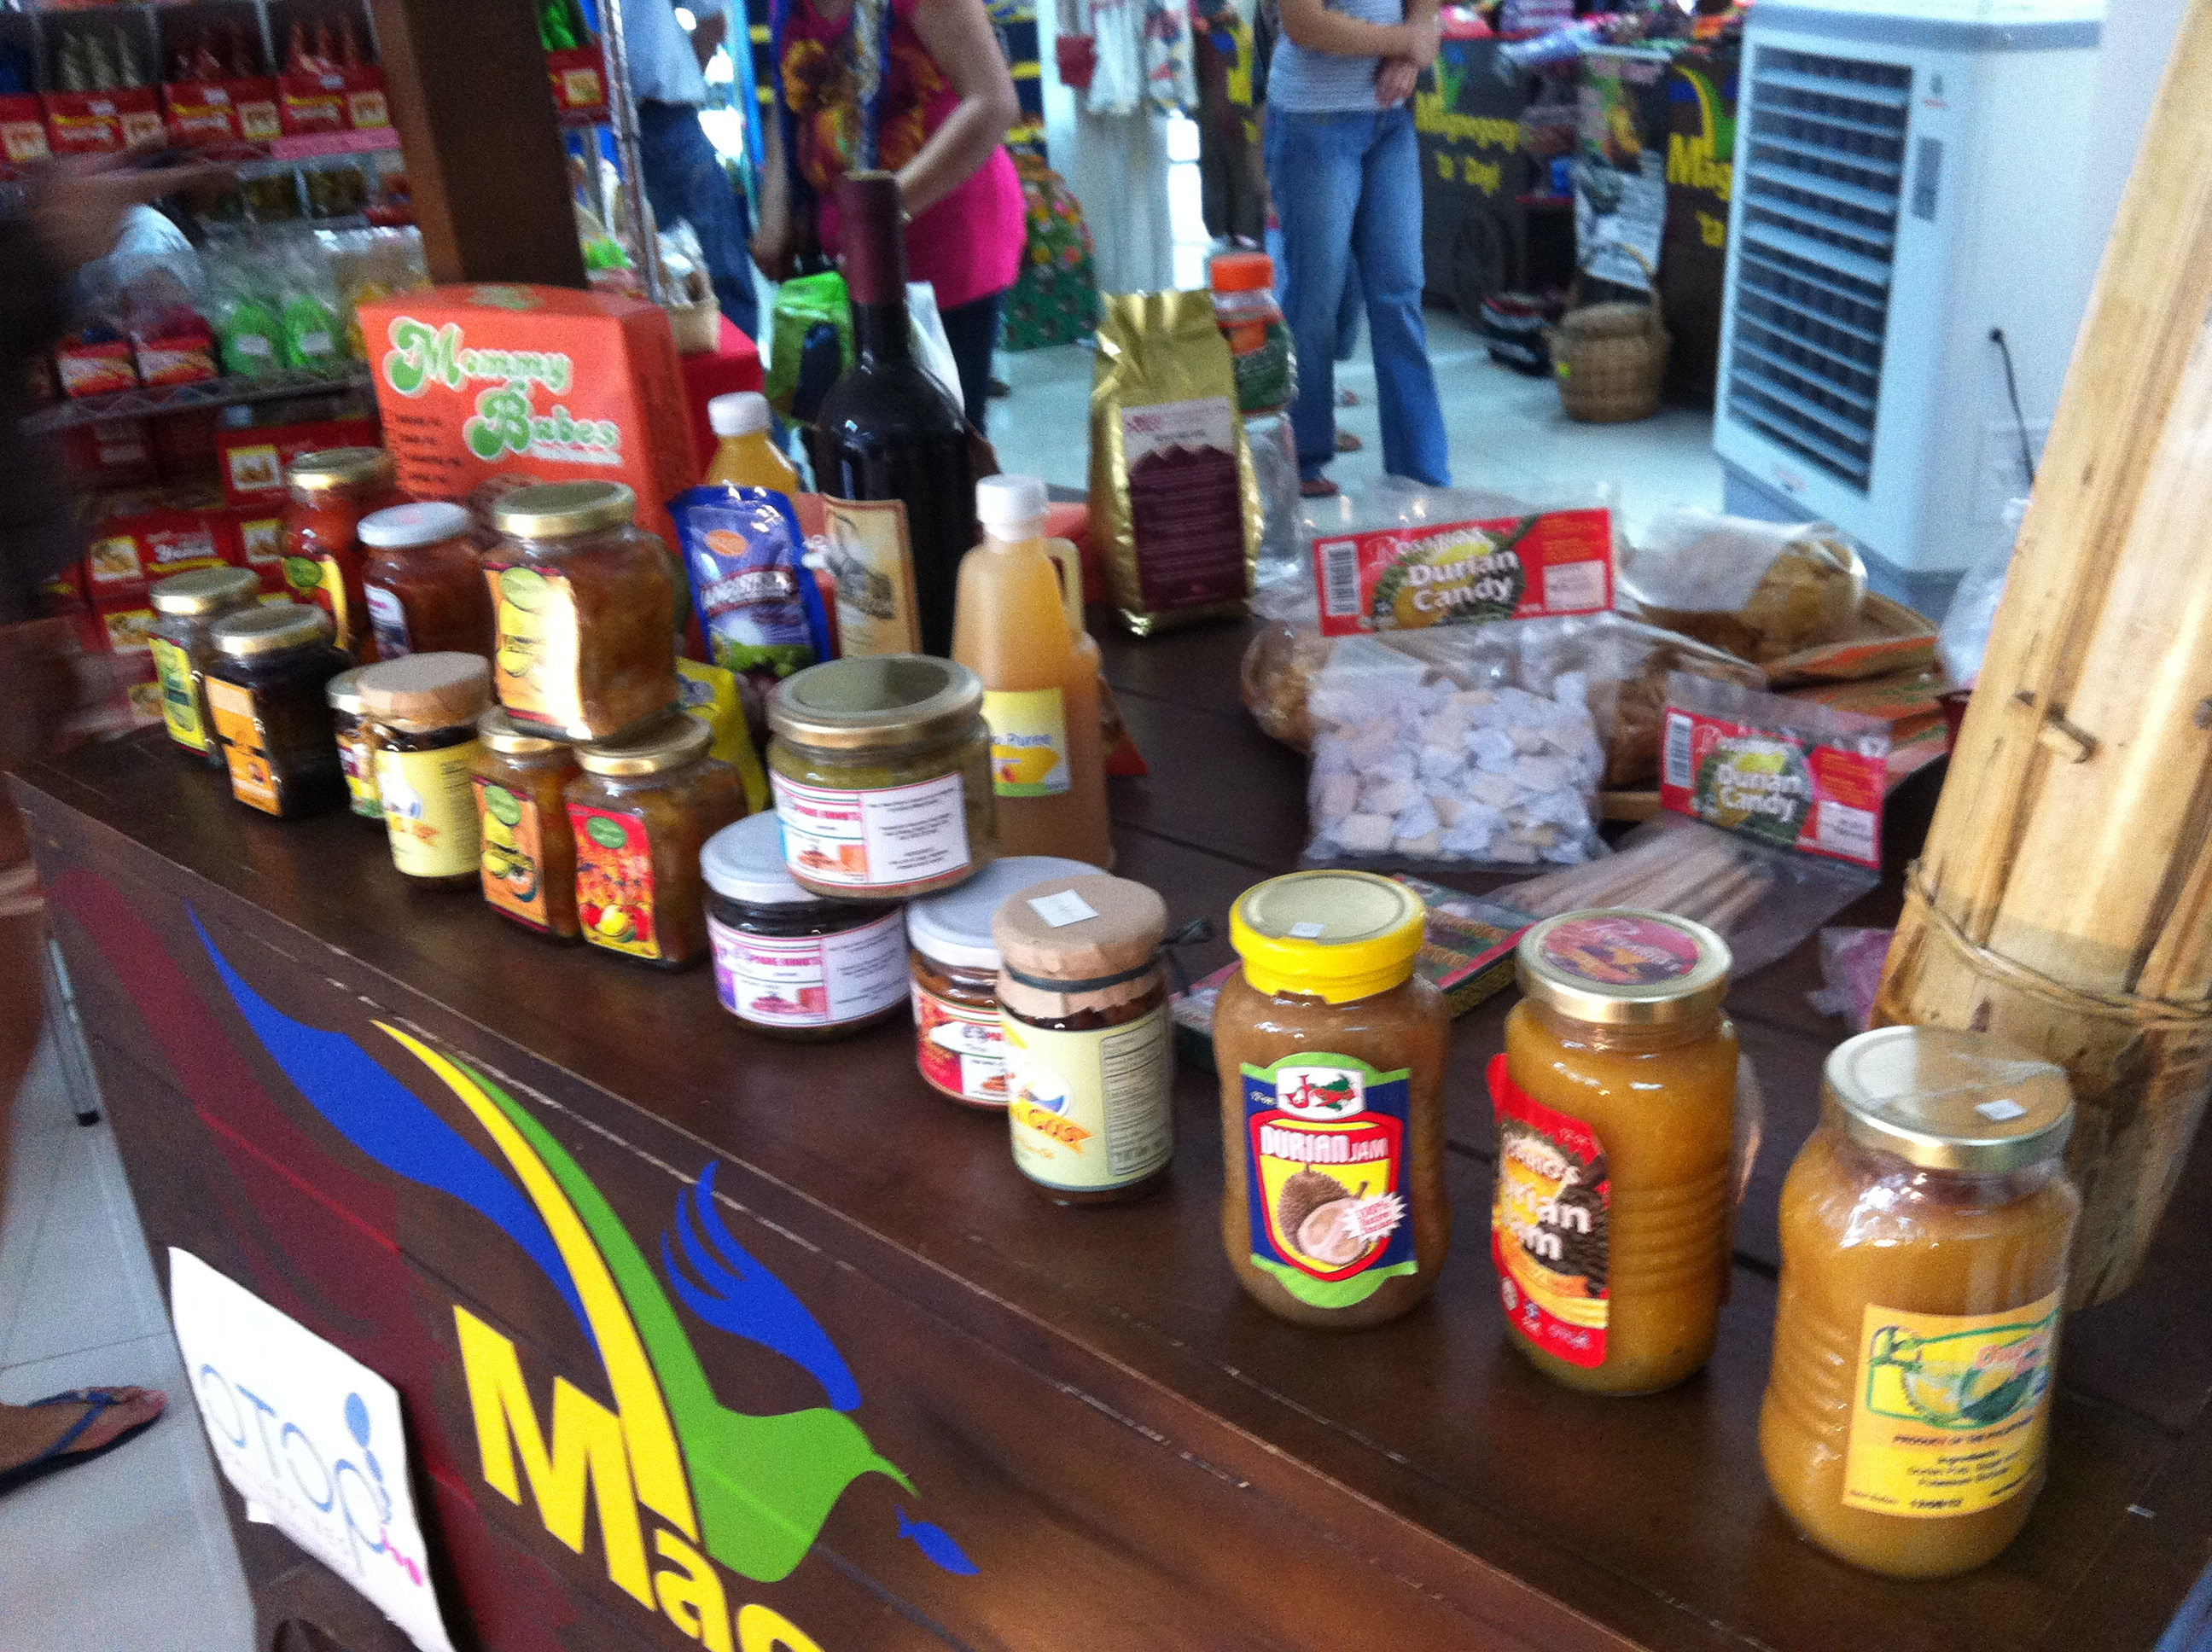 Facts on Food & Beverage in the Philippines